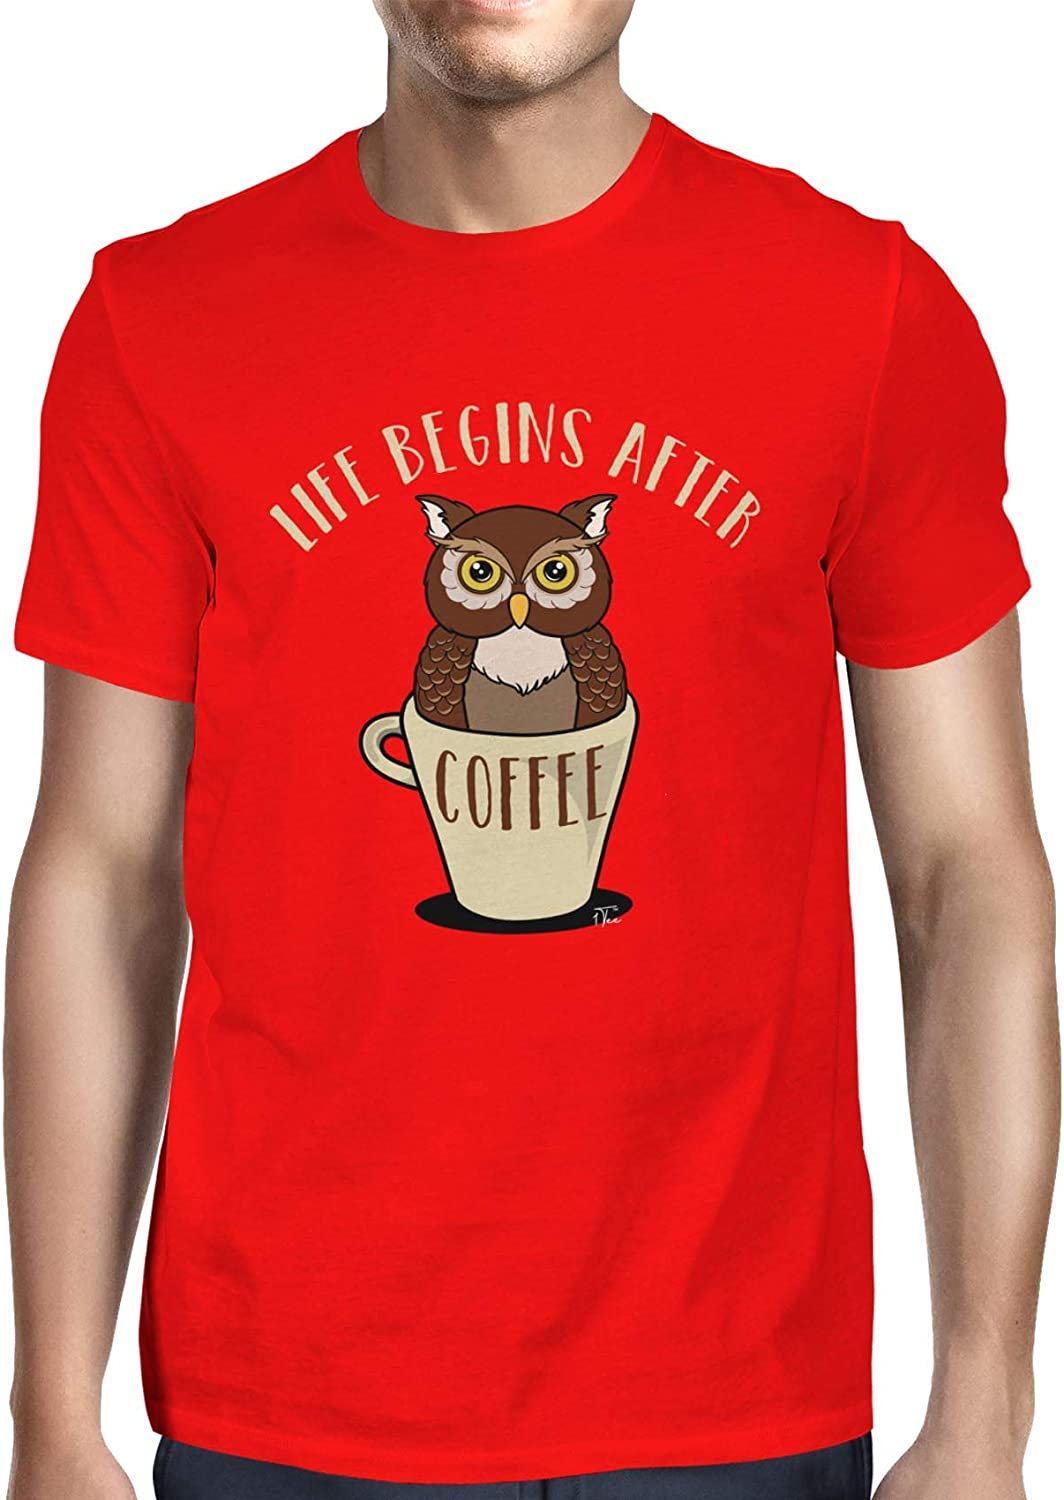 1Tee Womens Life Begins After Coffee Owl T-Shirt